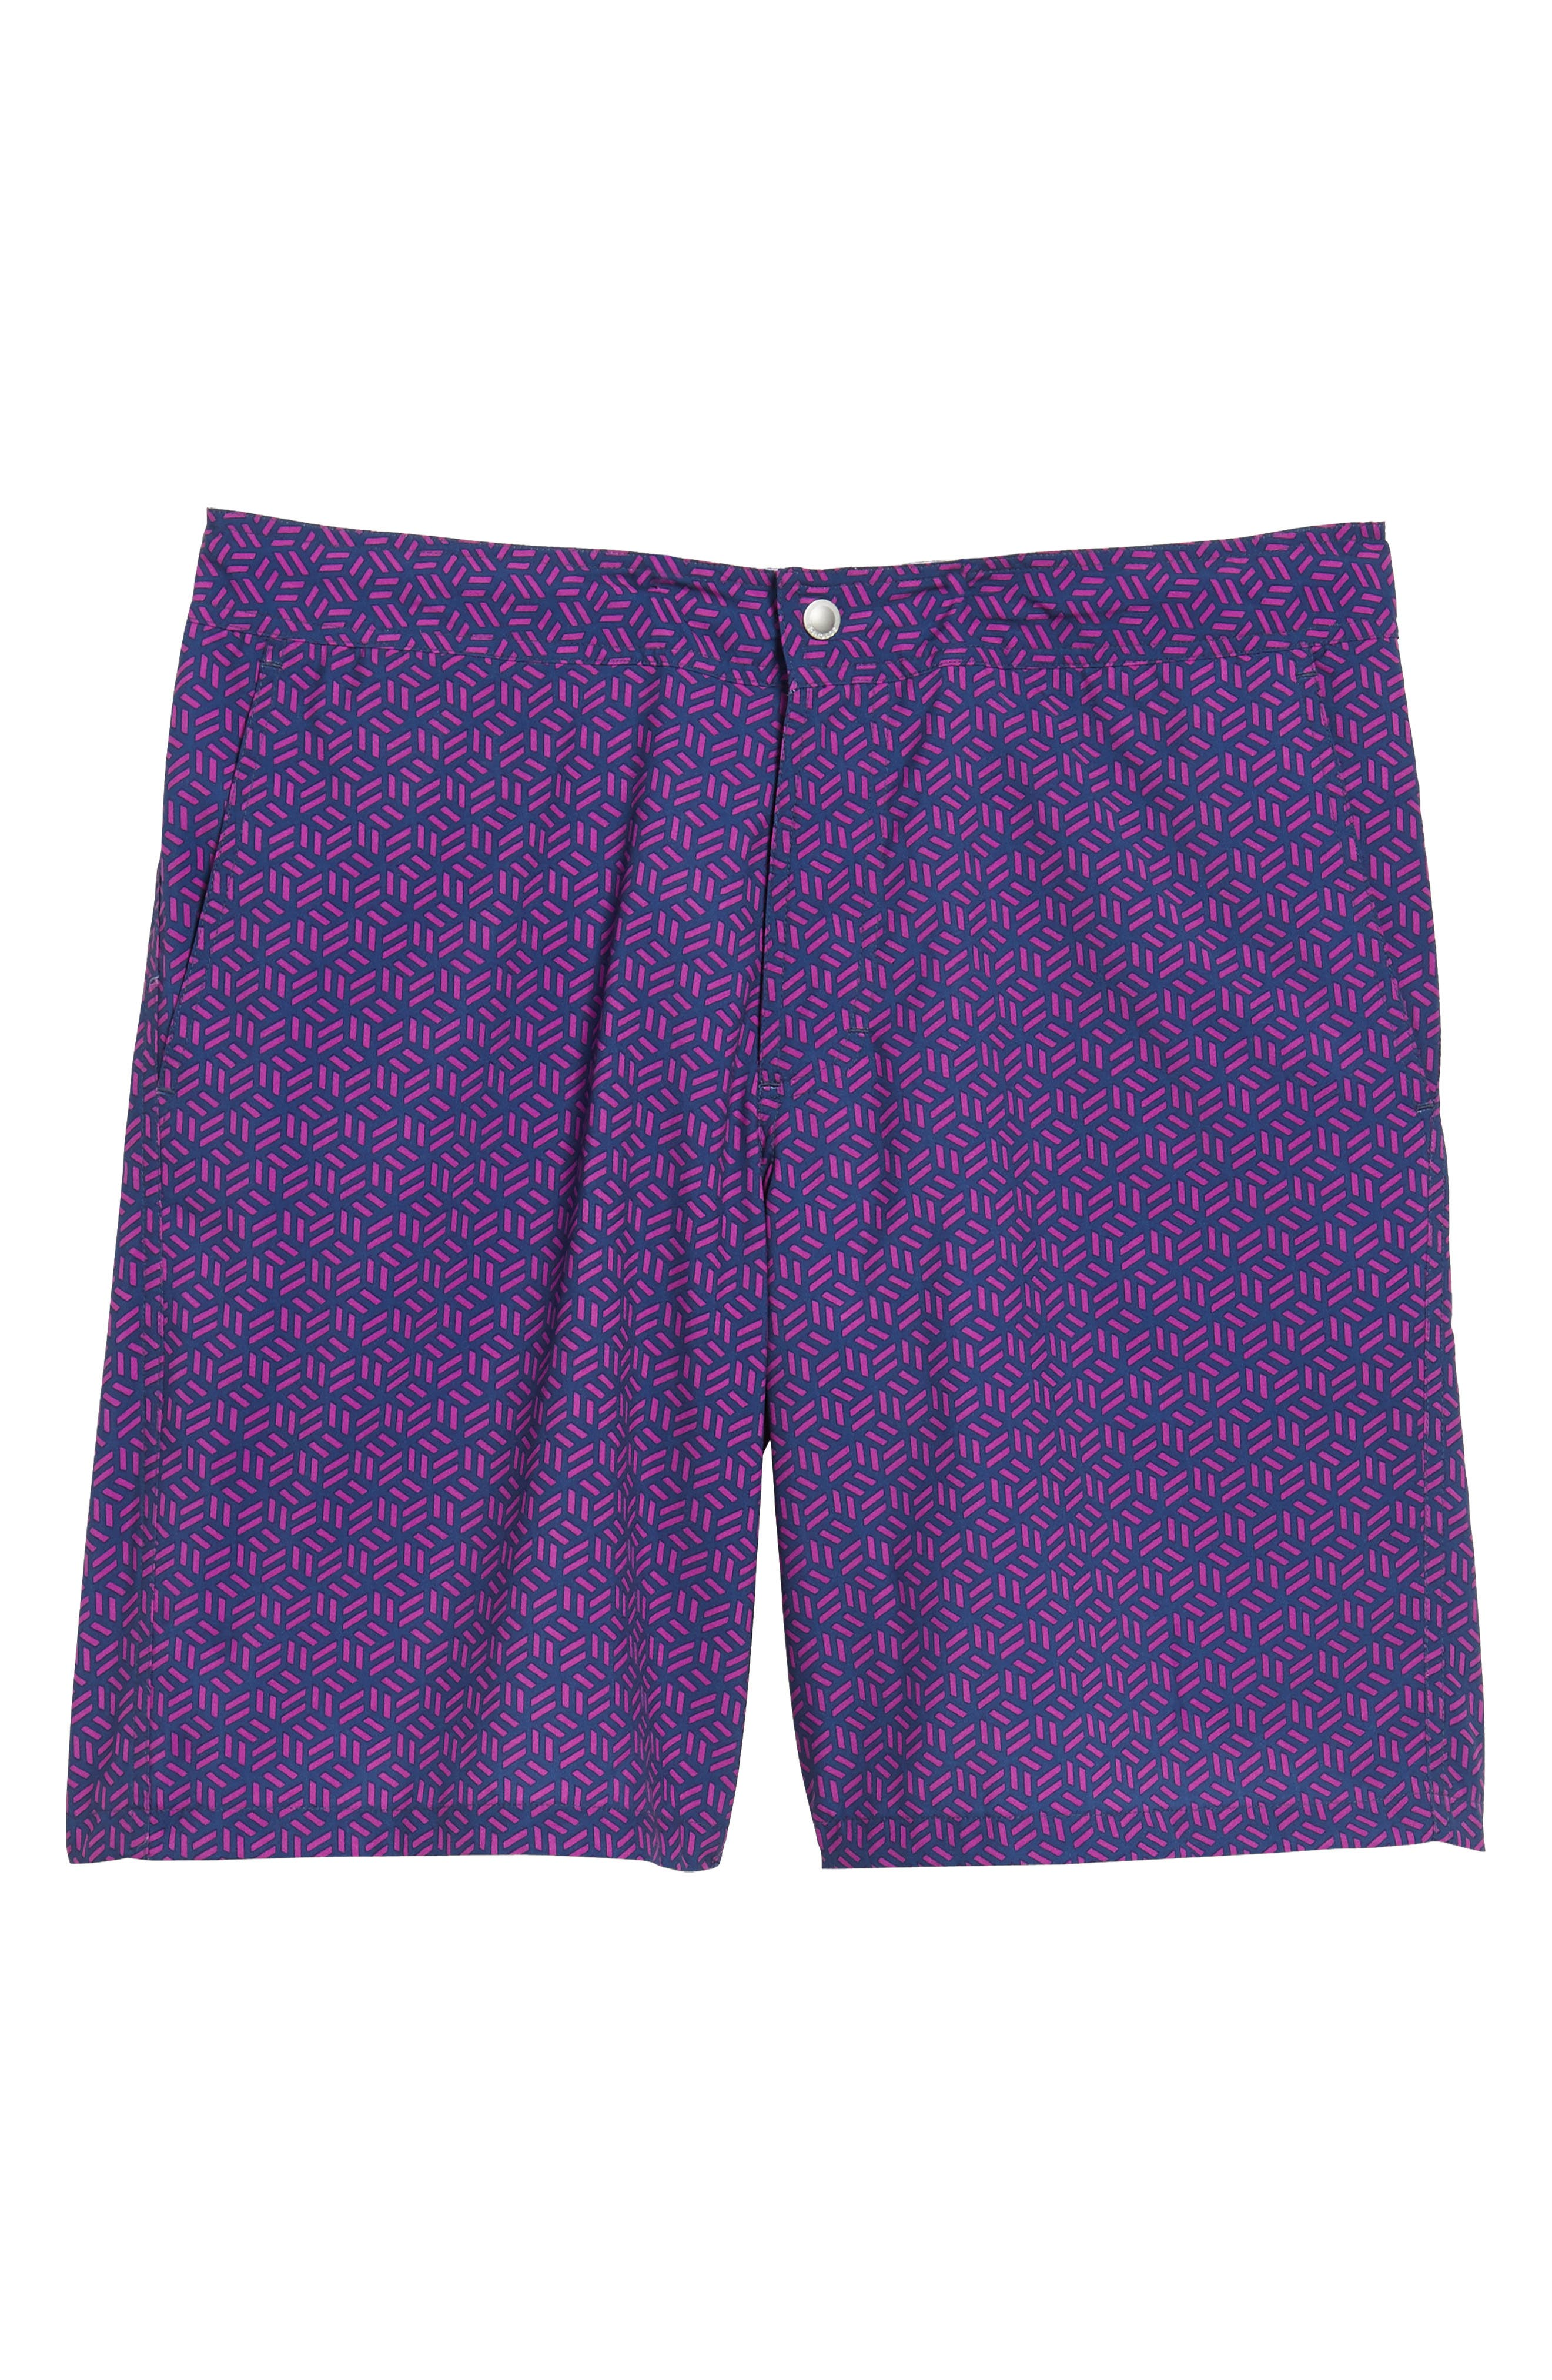 Geo Print 9-Inch Swim Trunks,                             Alternate thumbnail 6, color,                             400